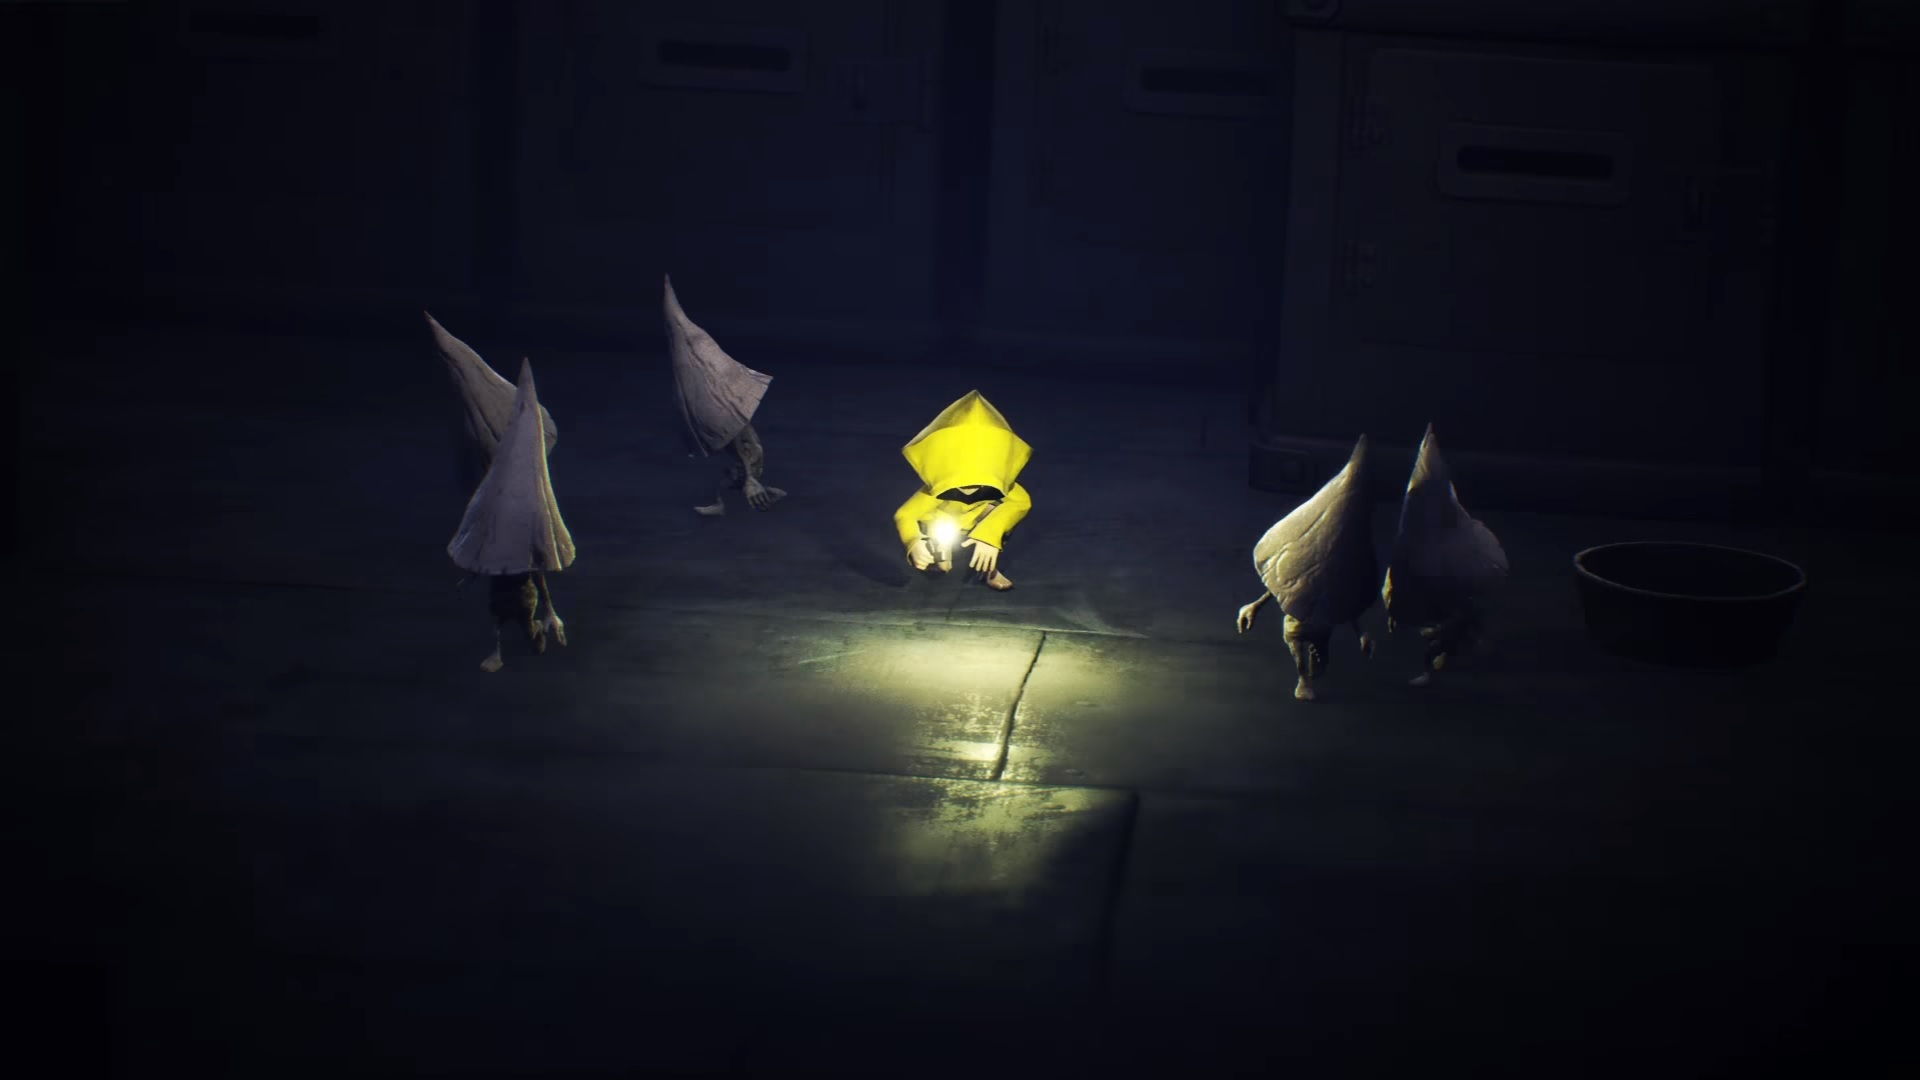 Little Nightmares Story and Ending Explained